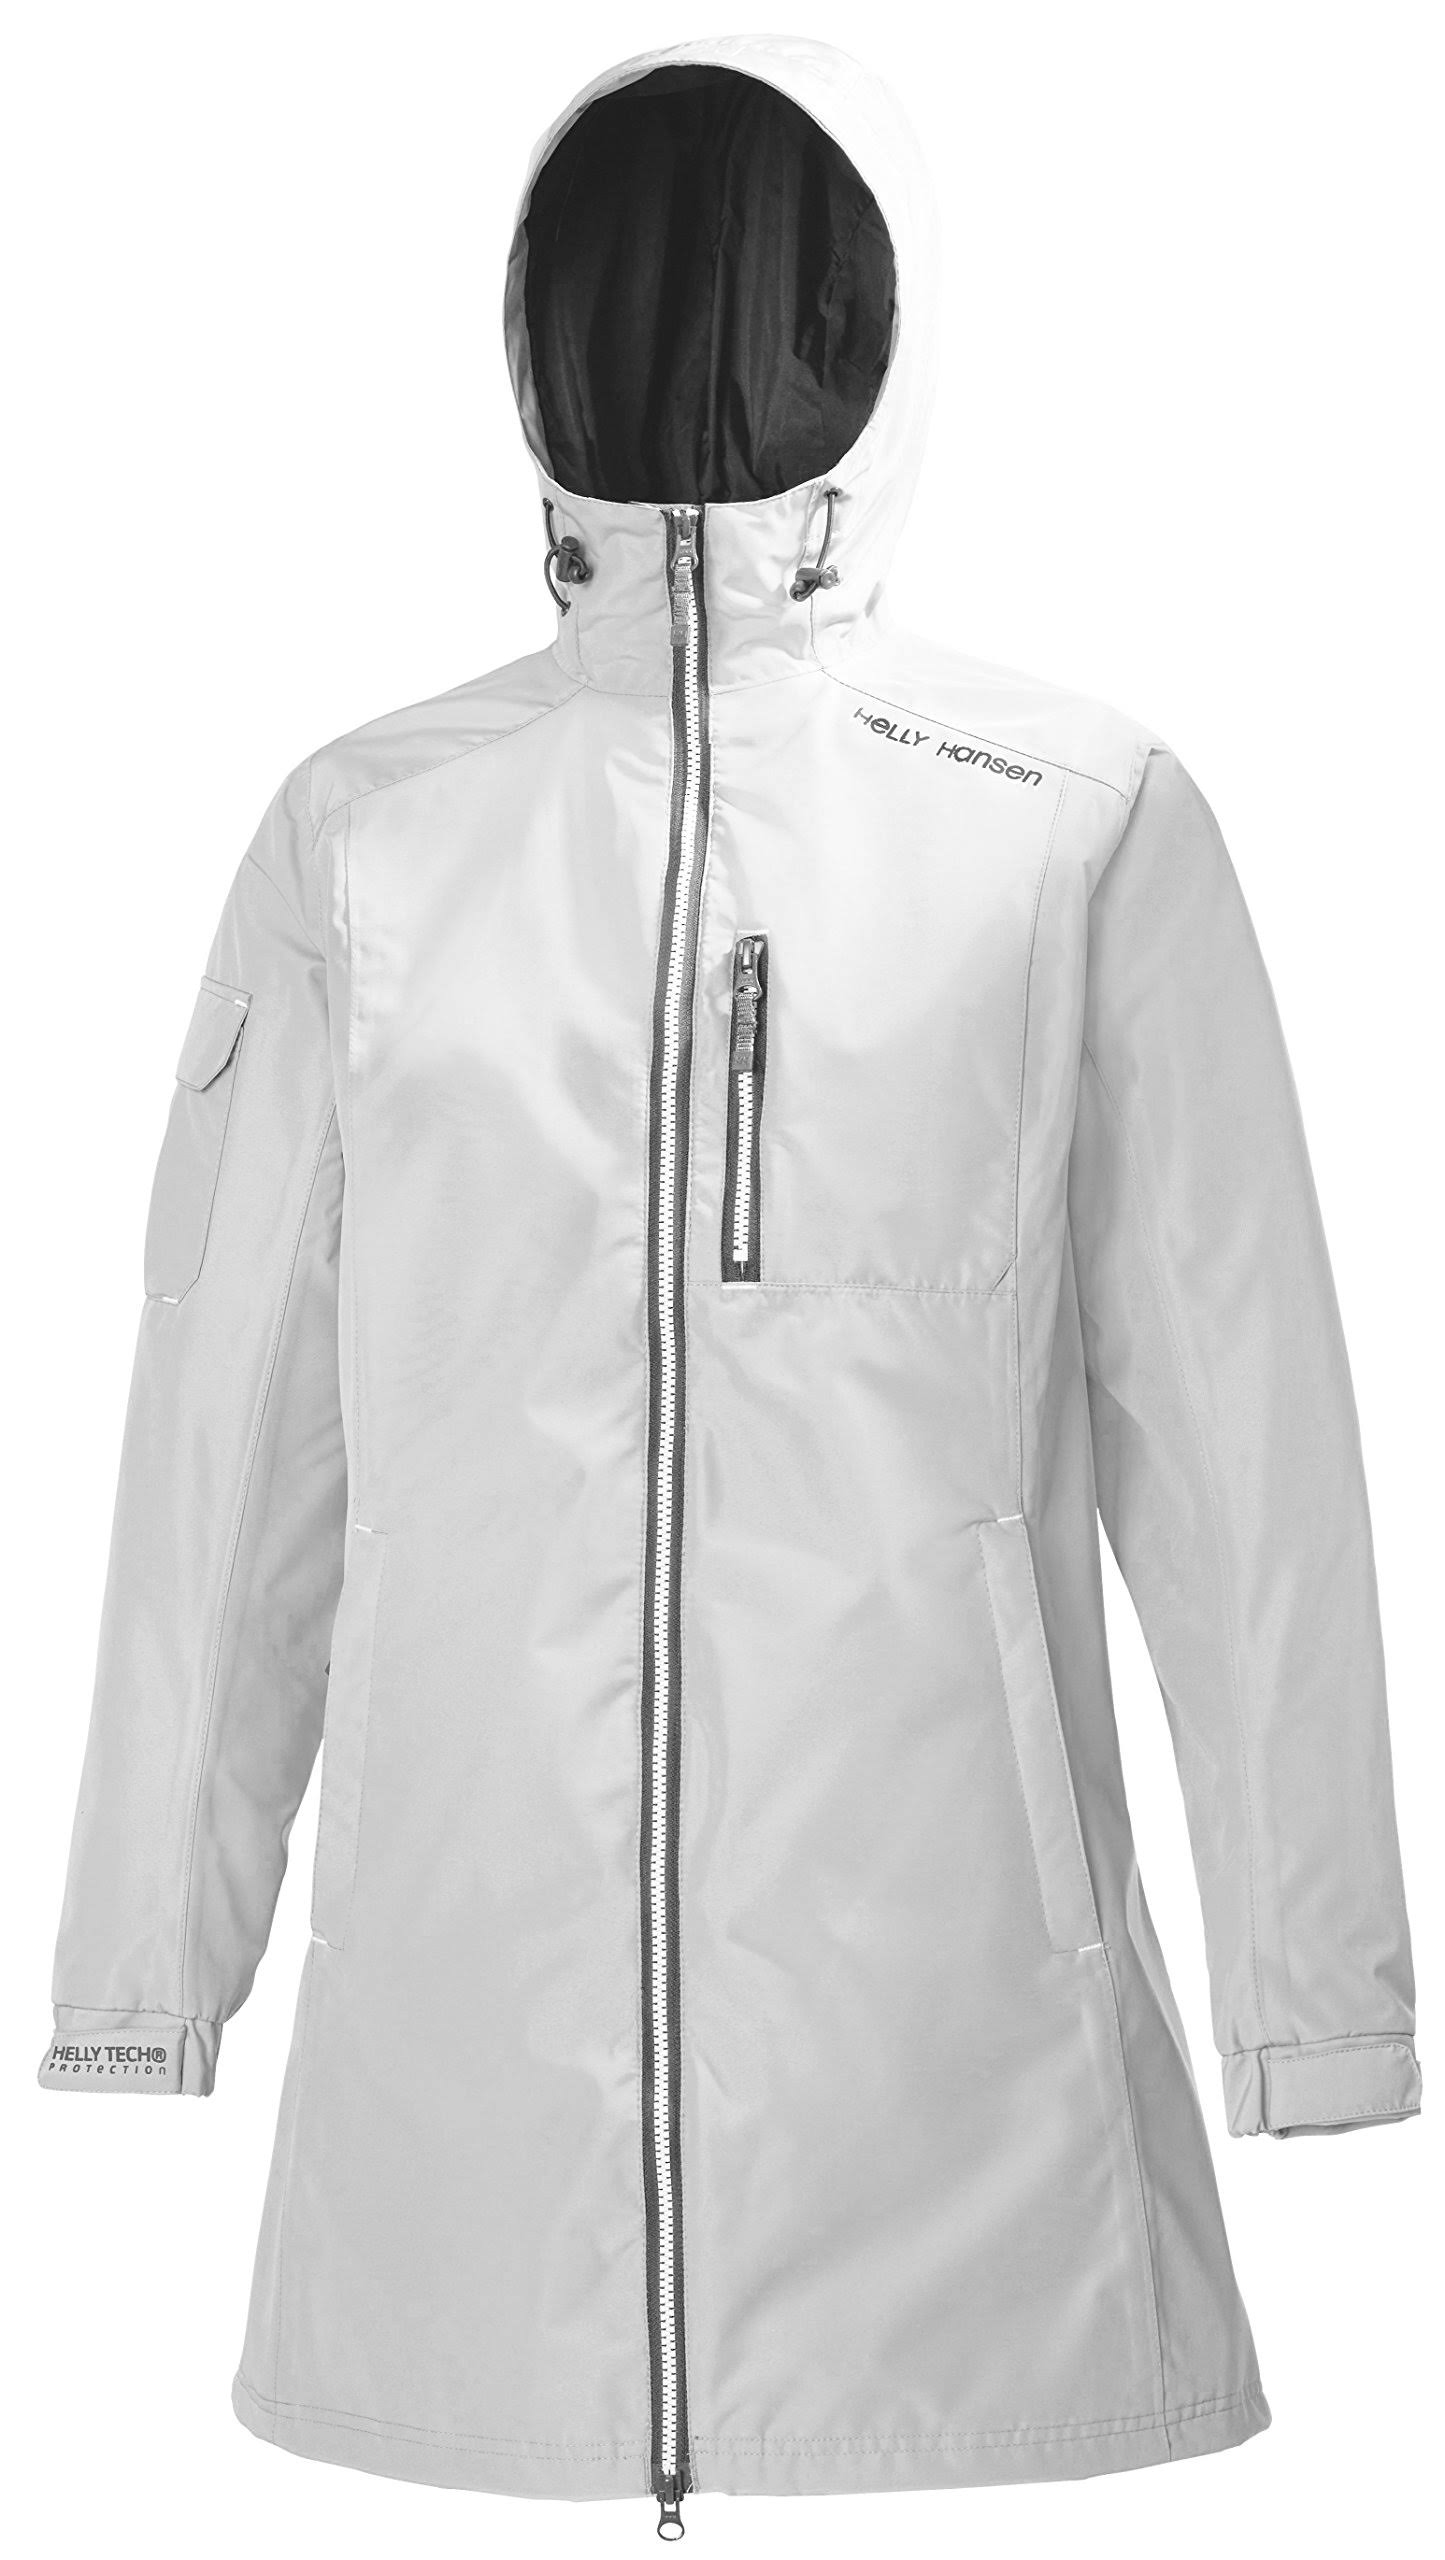 Mujer Long Blanca Belfast Hansen Chaqueta Helly M 7IqfxnwgE